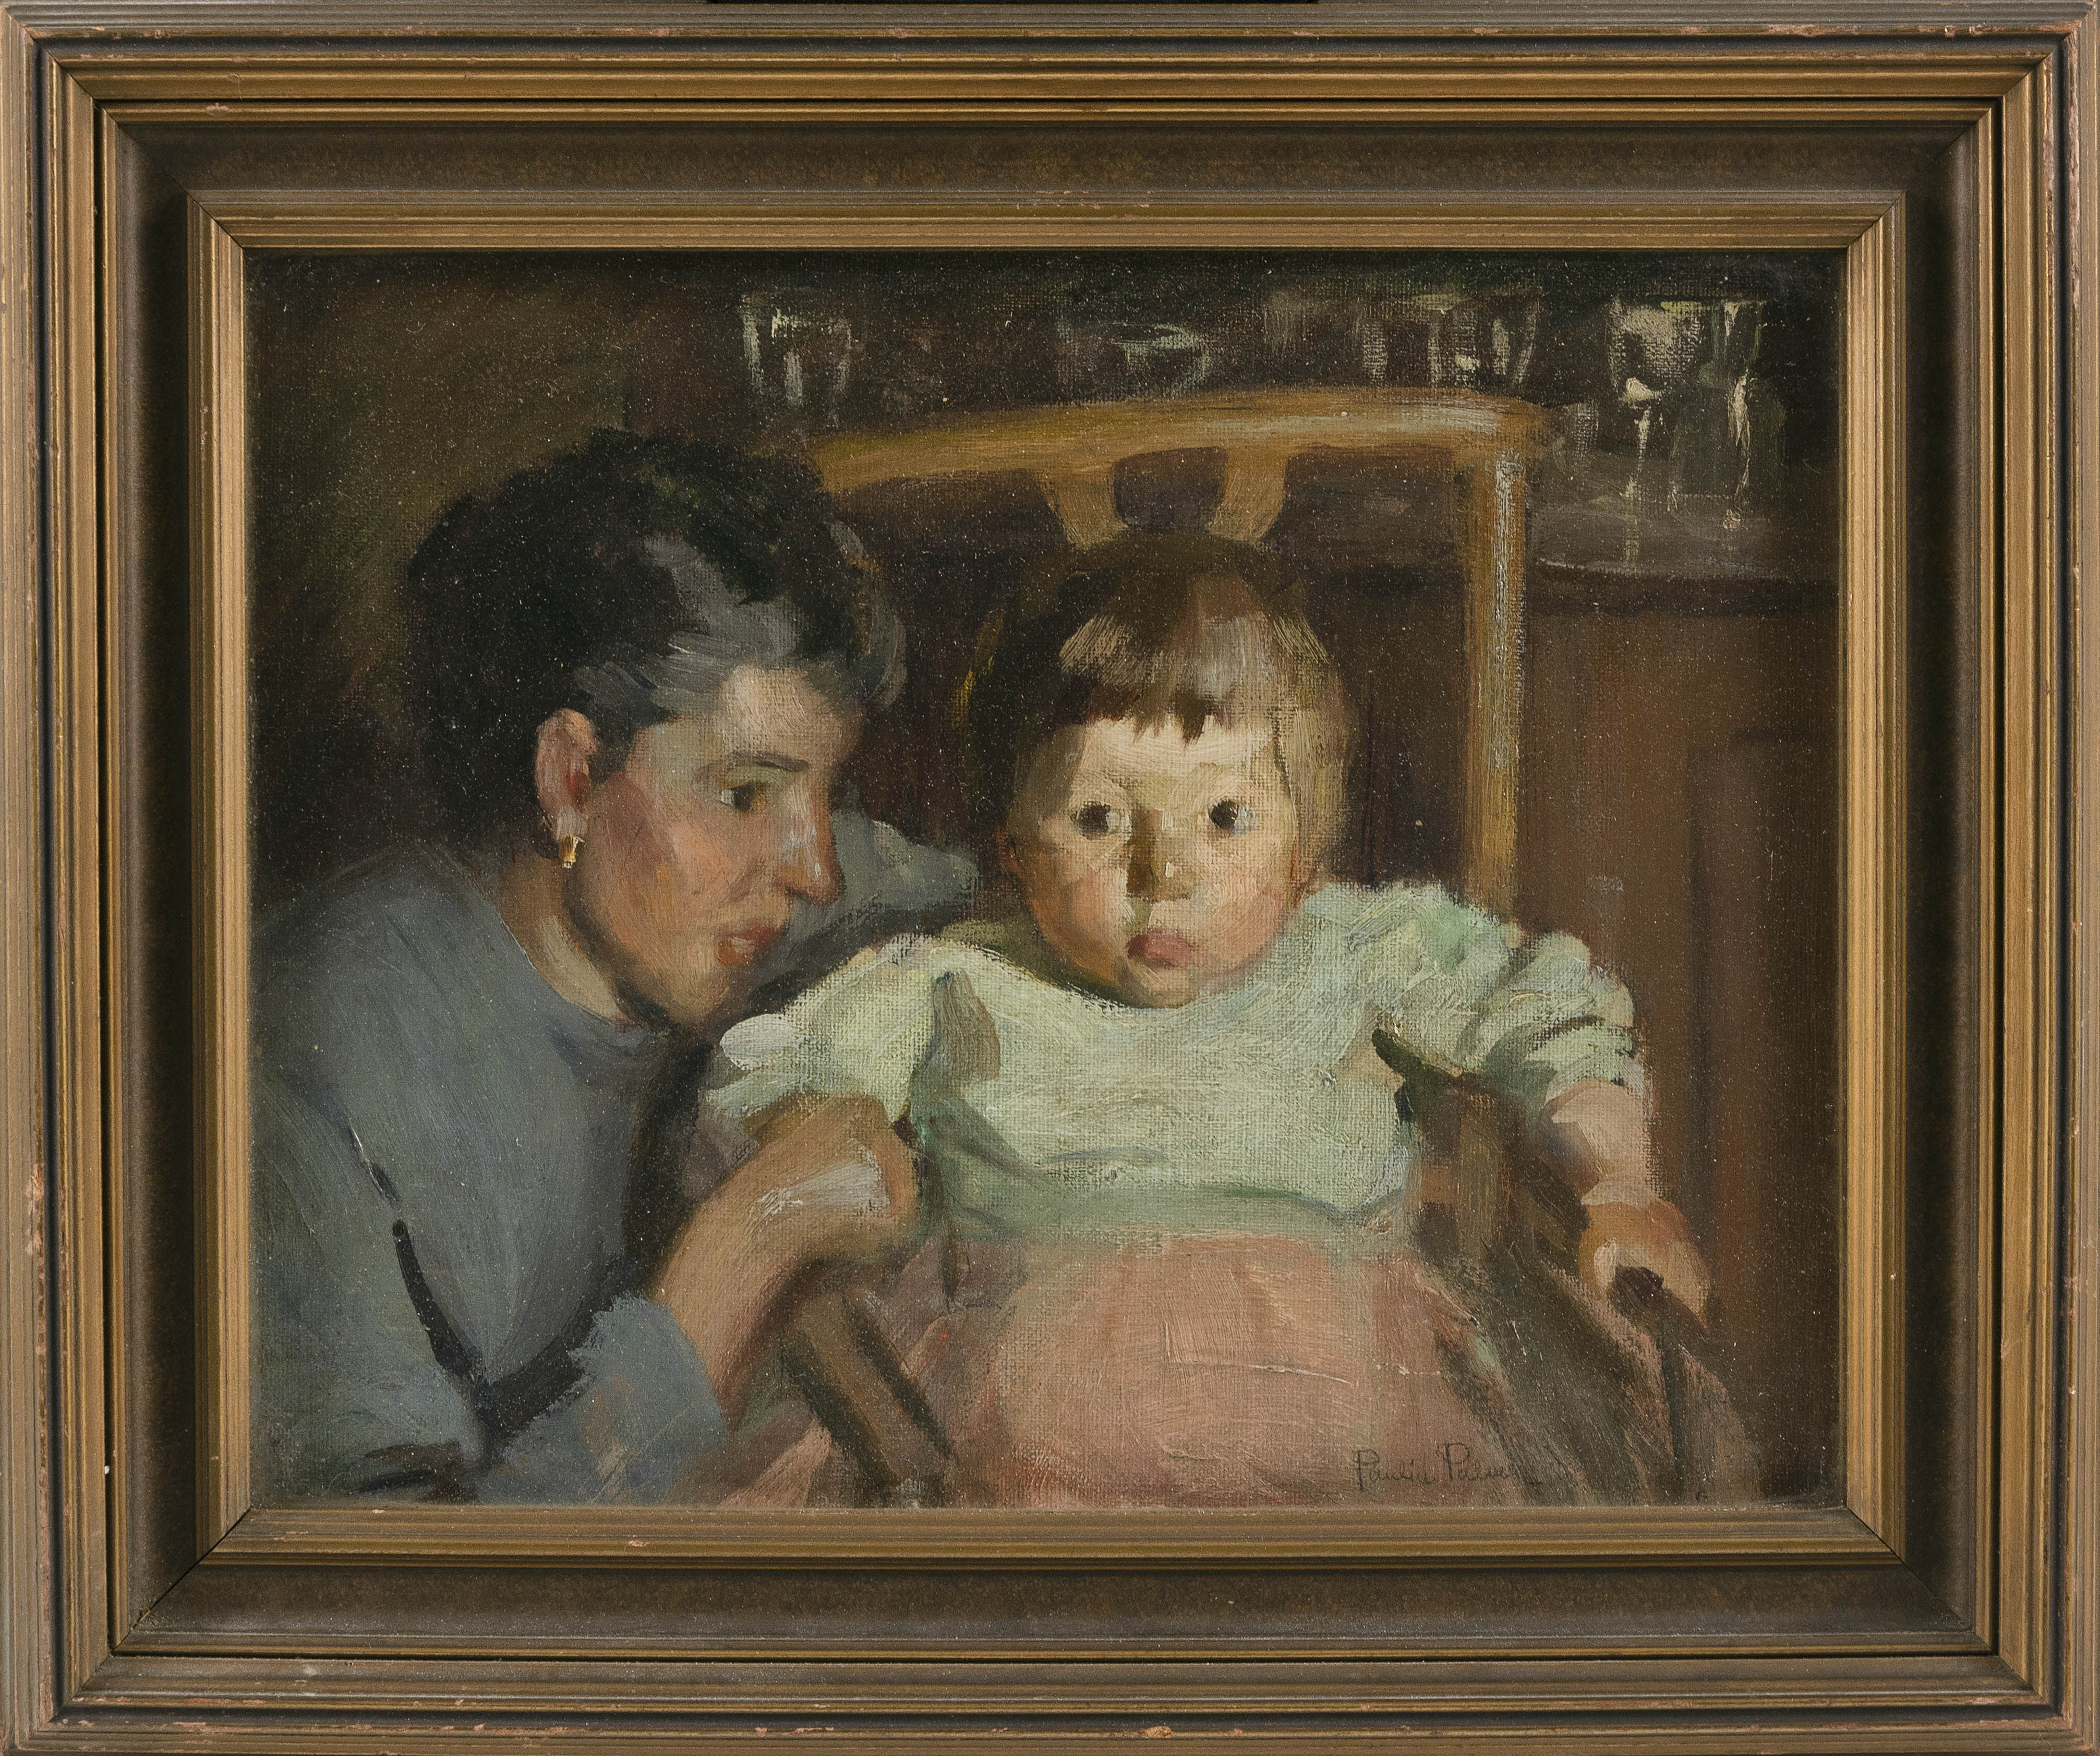 PAULINE LENNARDS PALMER (Illinois, 1867-1938), Mother and child., Oil on board, 10